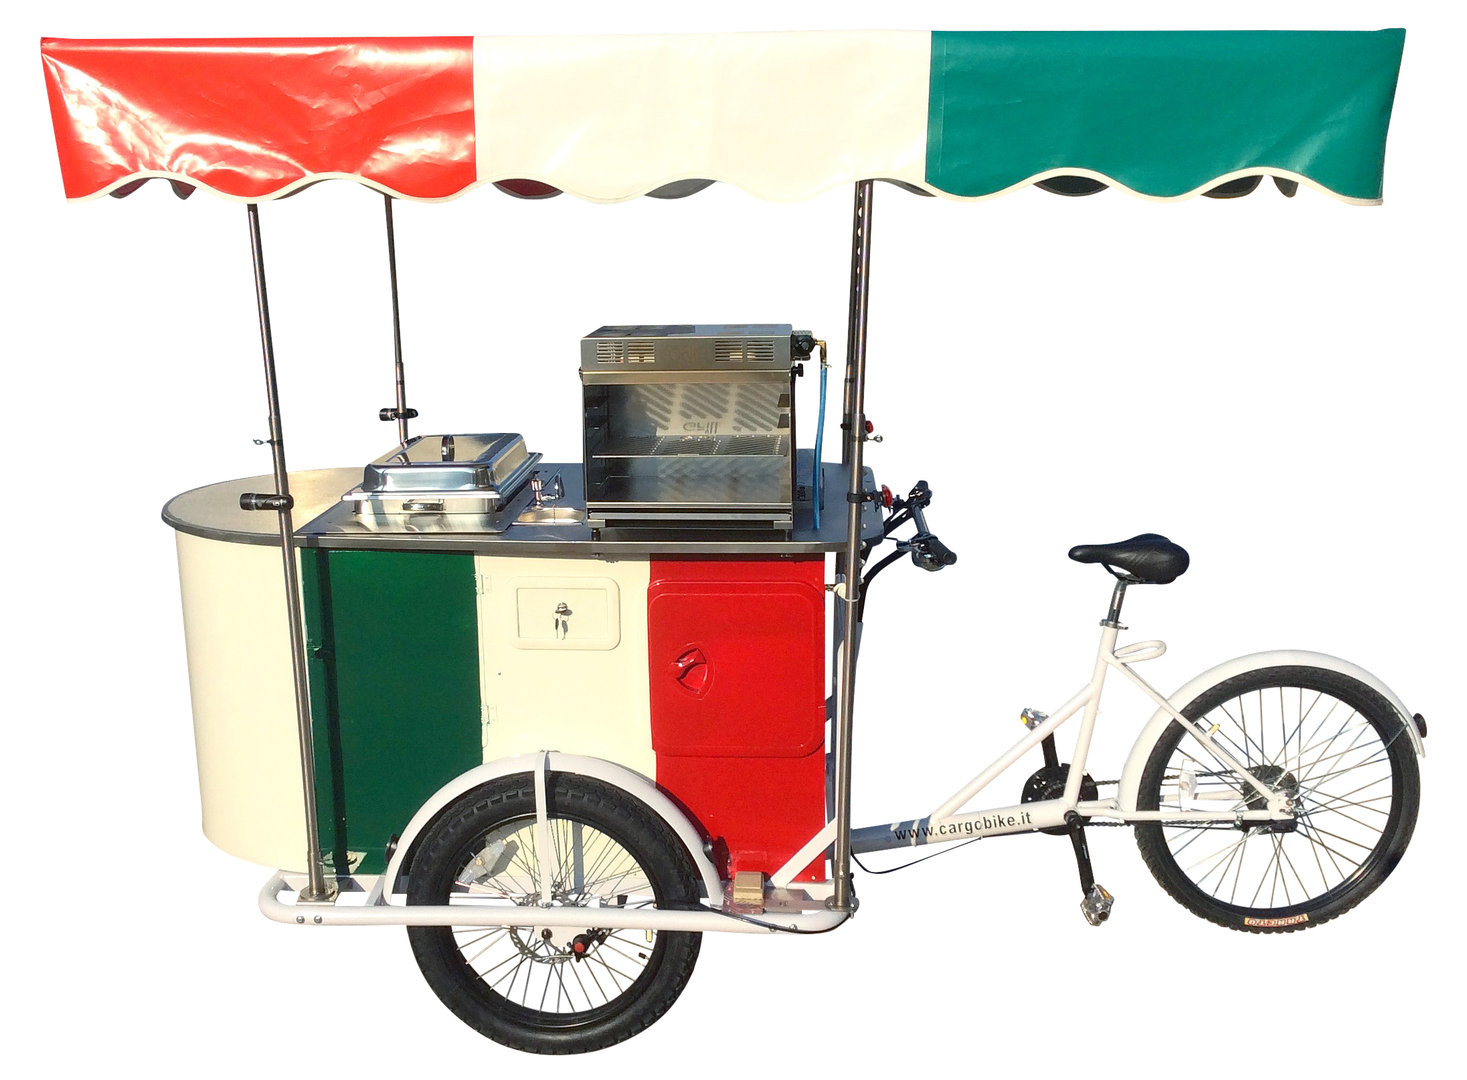 STREET FOOD BIKE REVIVAL BASIC on CYCLOPE A90